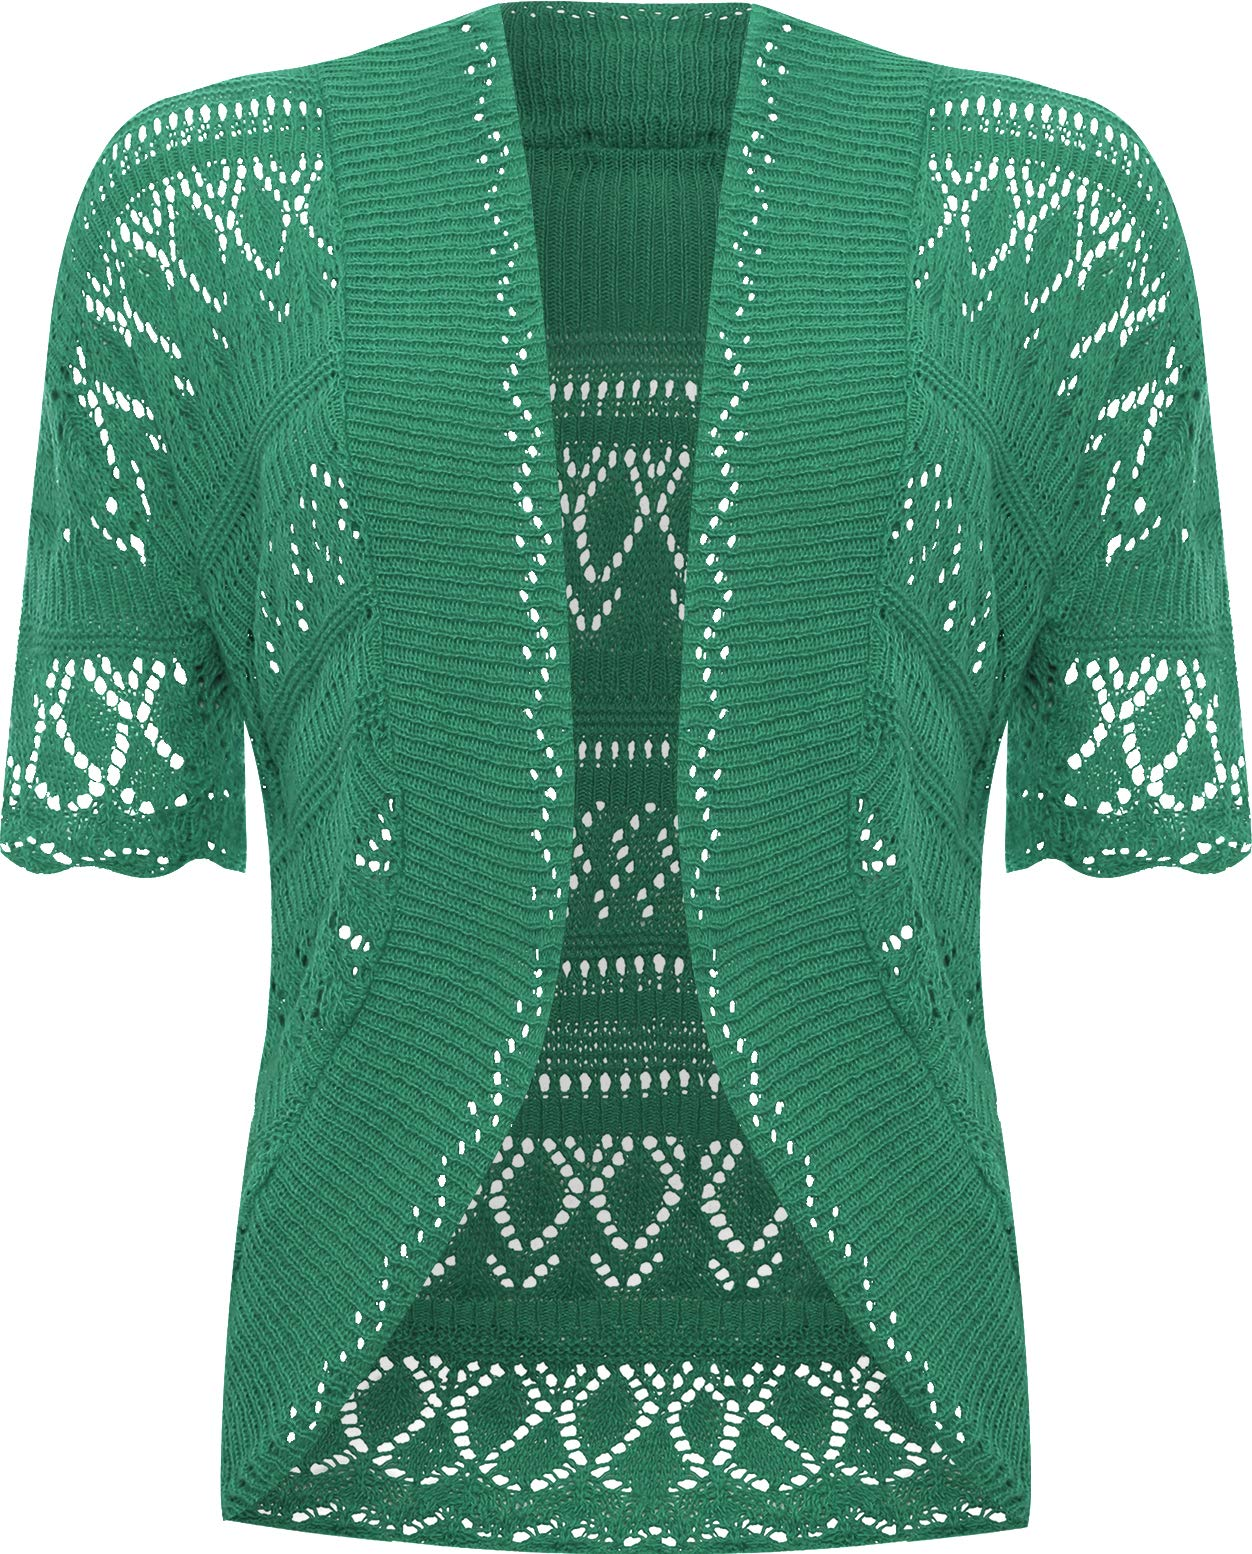 WearAll Women's Plus Size Crochet Knitted Short Sleeve Cardigan - Green - US 12-14 (UK 16-18)